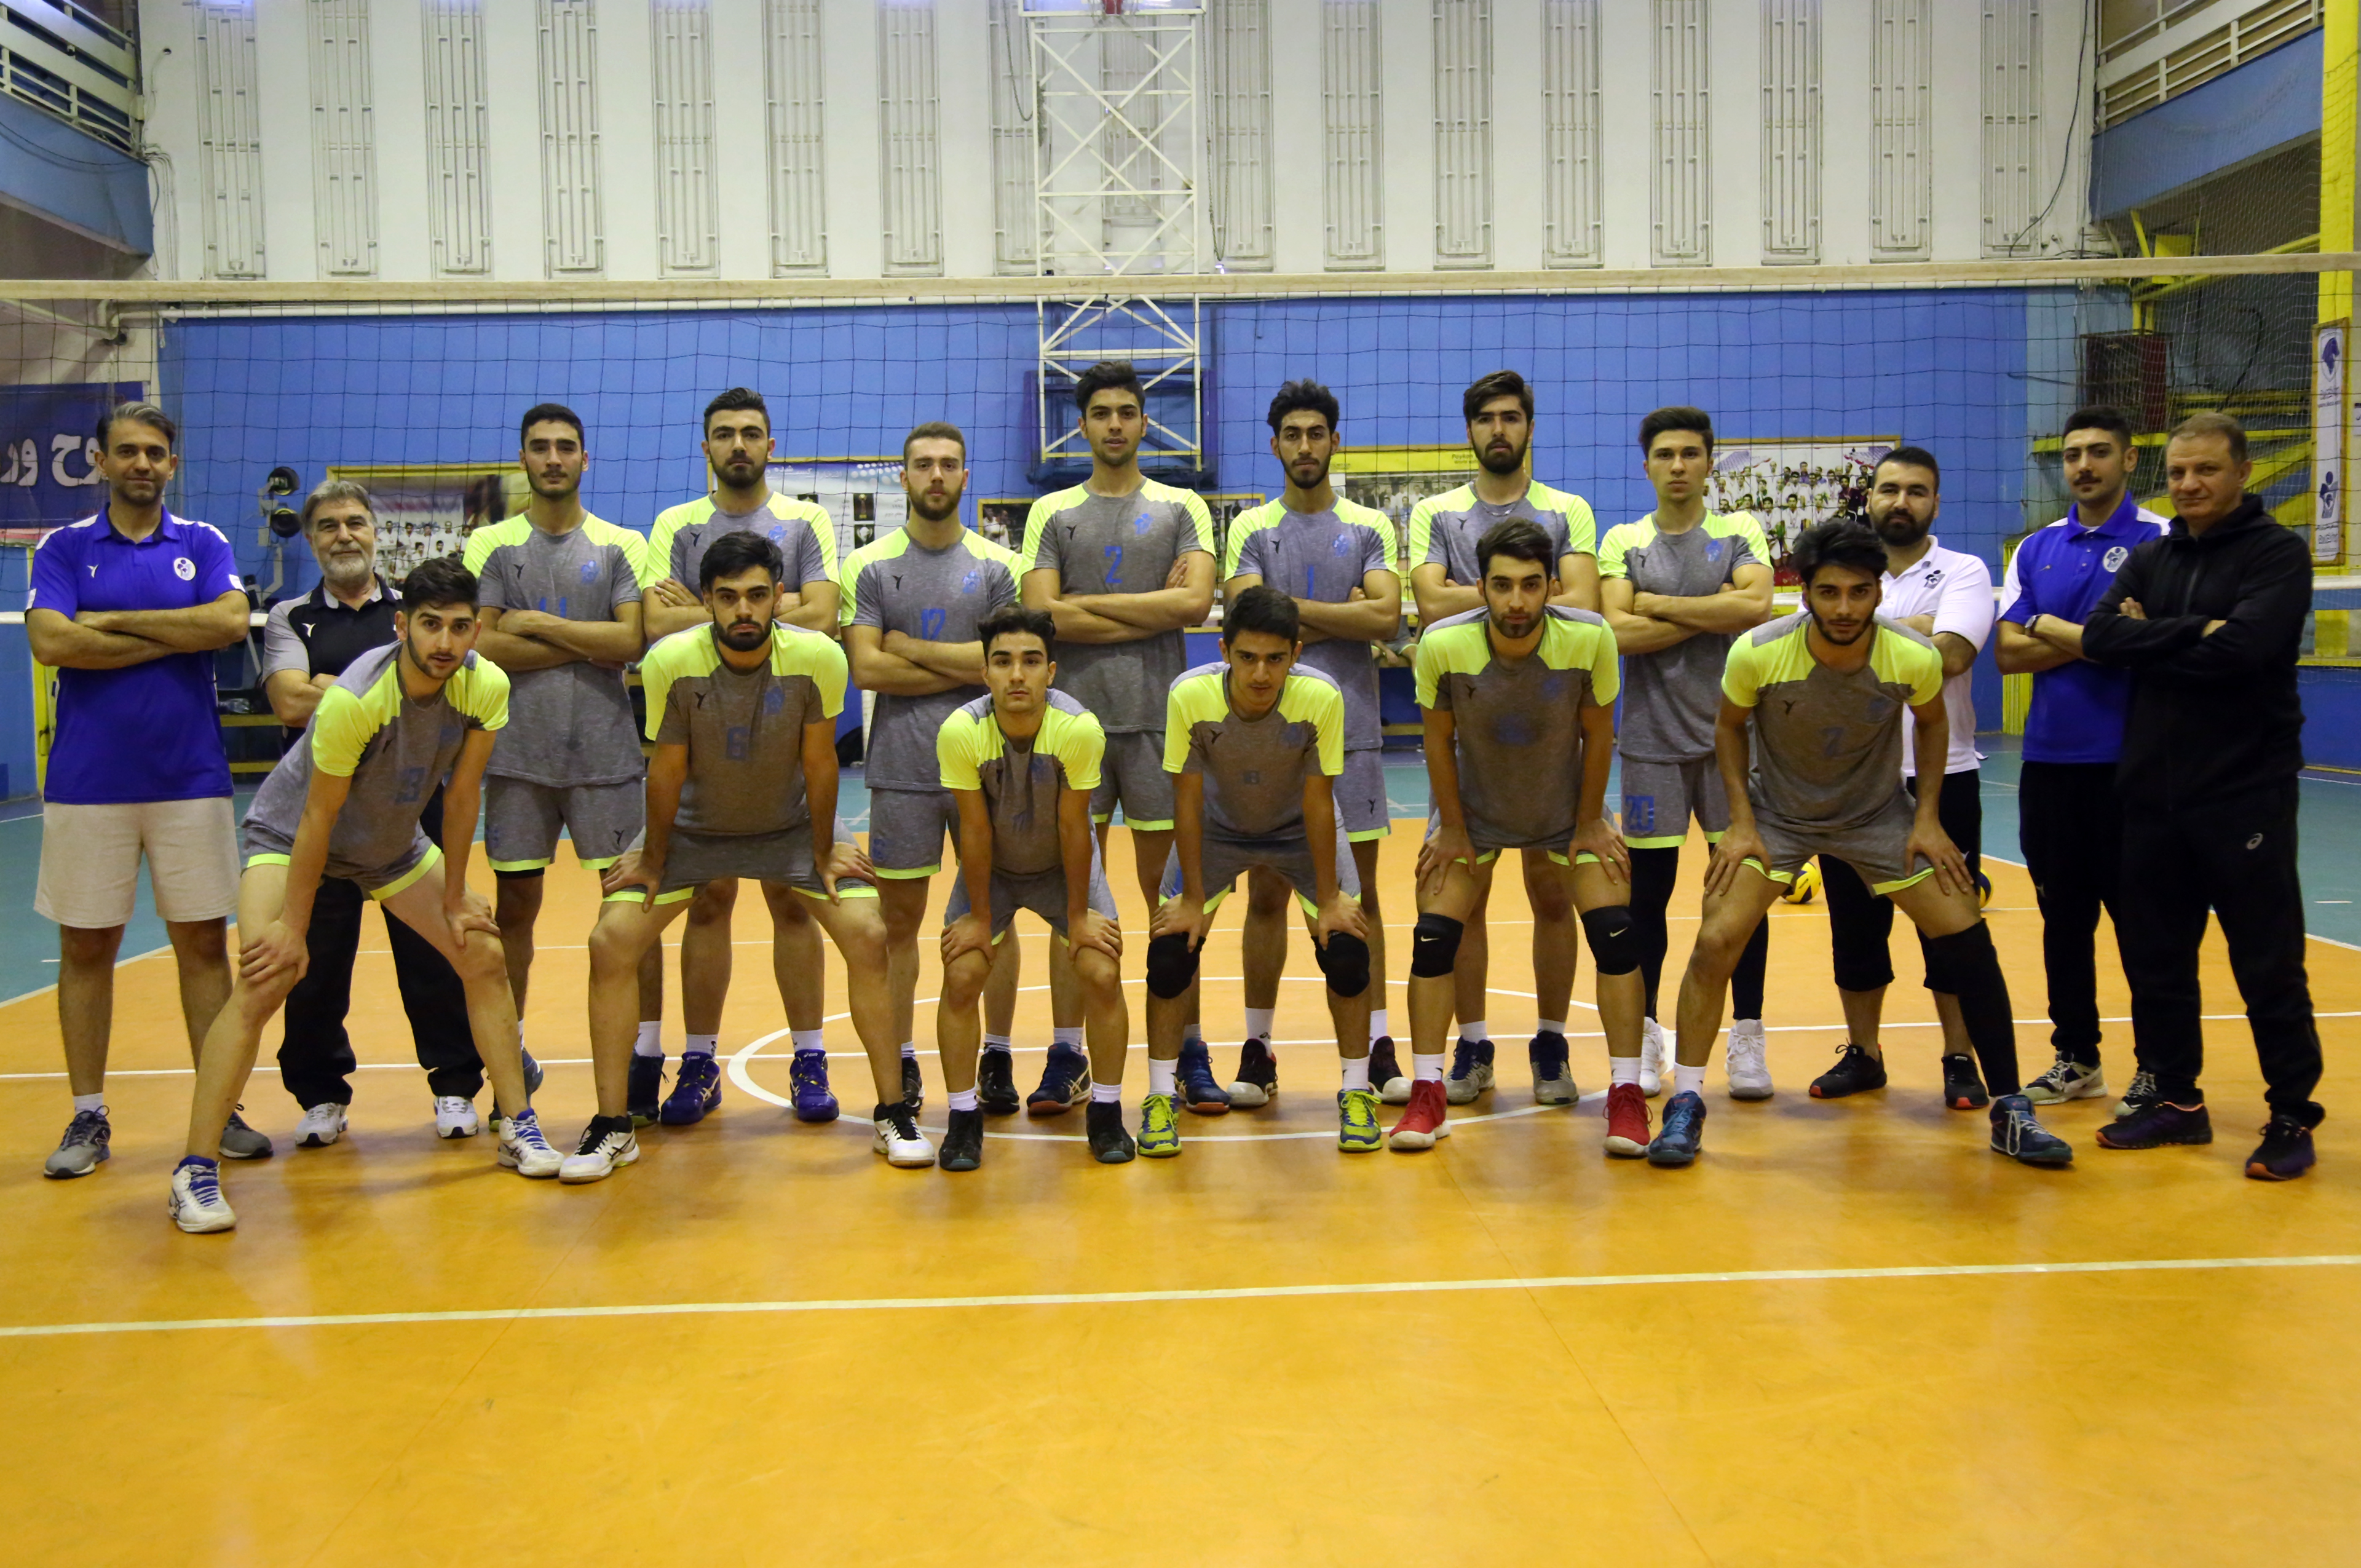 paykan U18 volleyball team gained championship of iran's volleyball U18 league